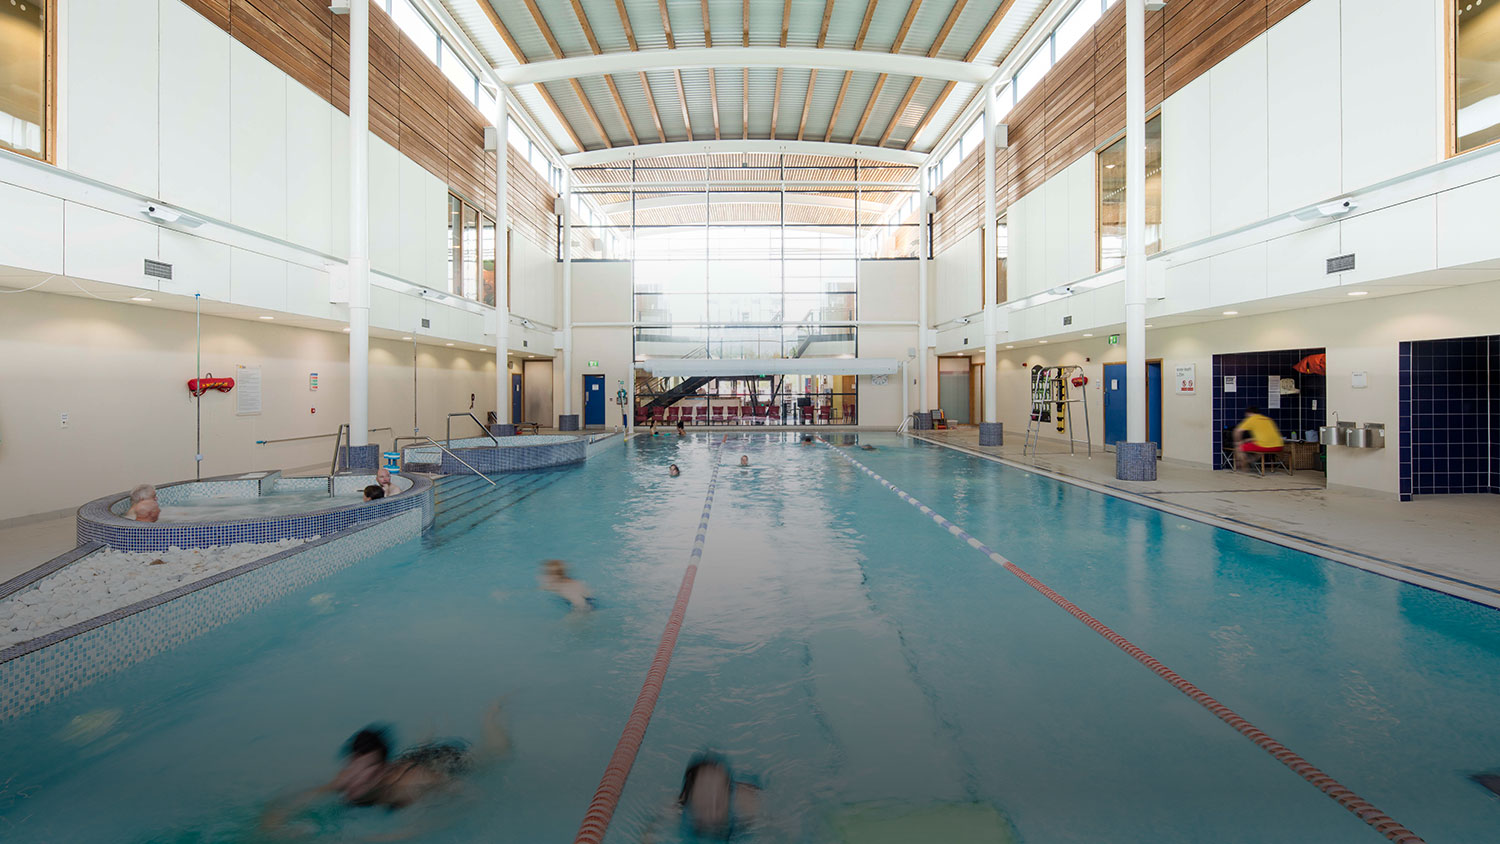 Gym In Gosforth Fitness Wellbeing Nuffield Health The best pool for sha256 and scrypt. gym in gosforth fitness wellbeing